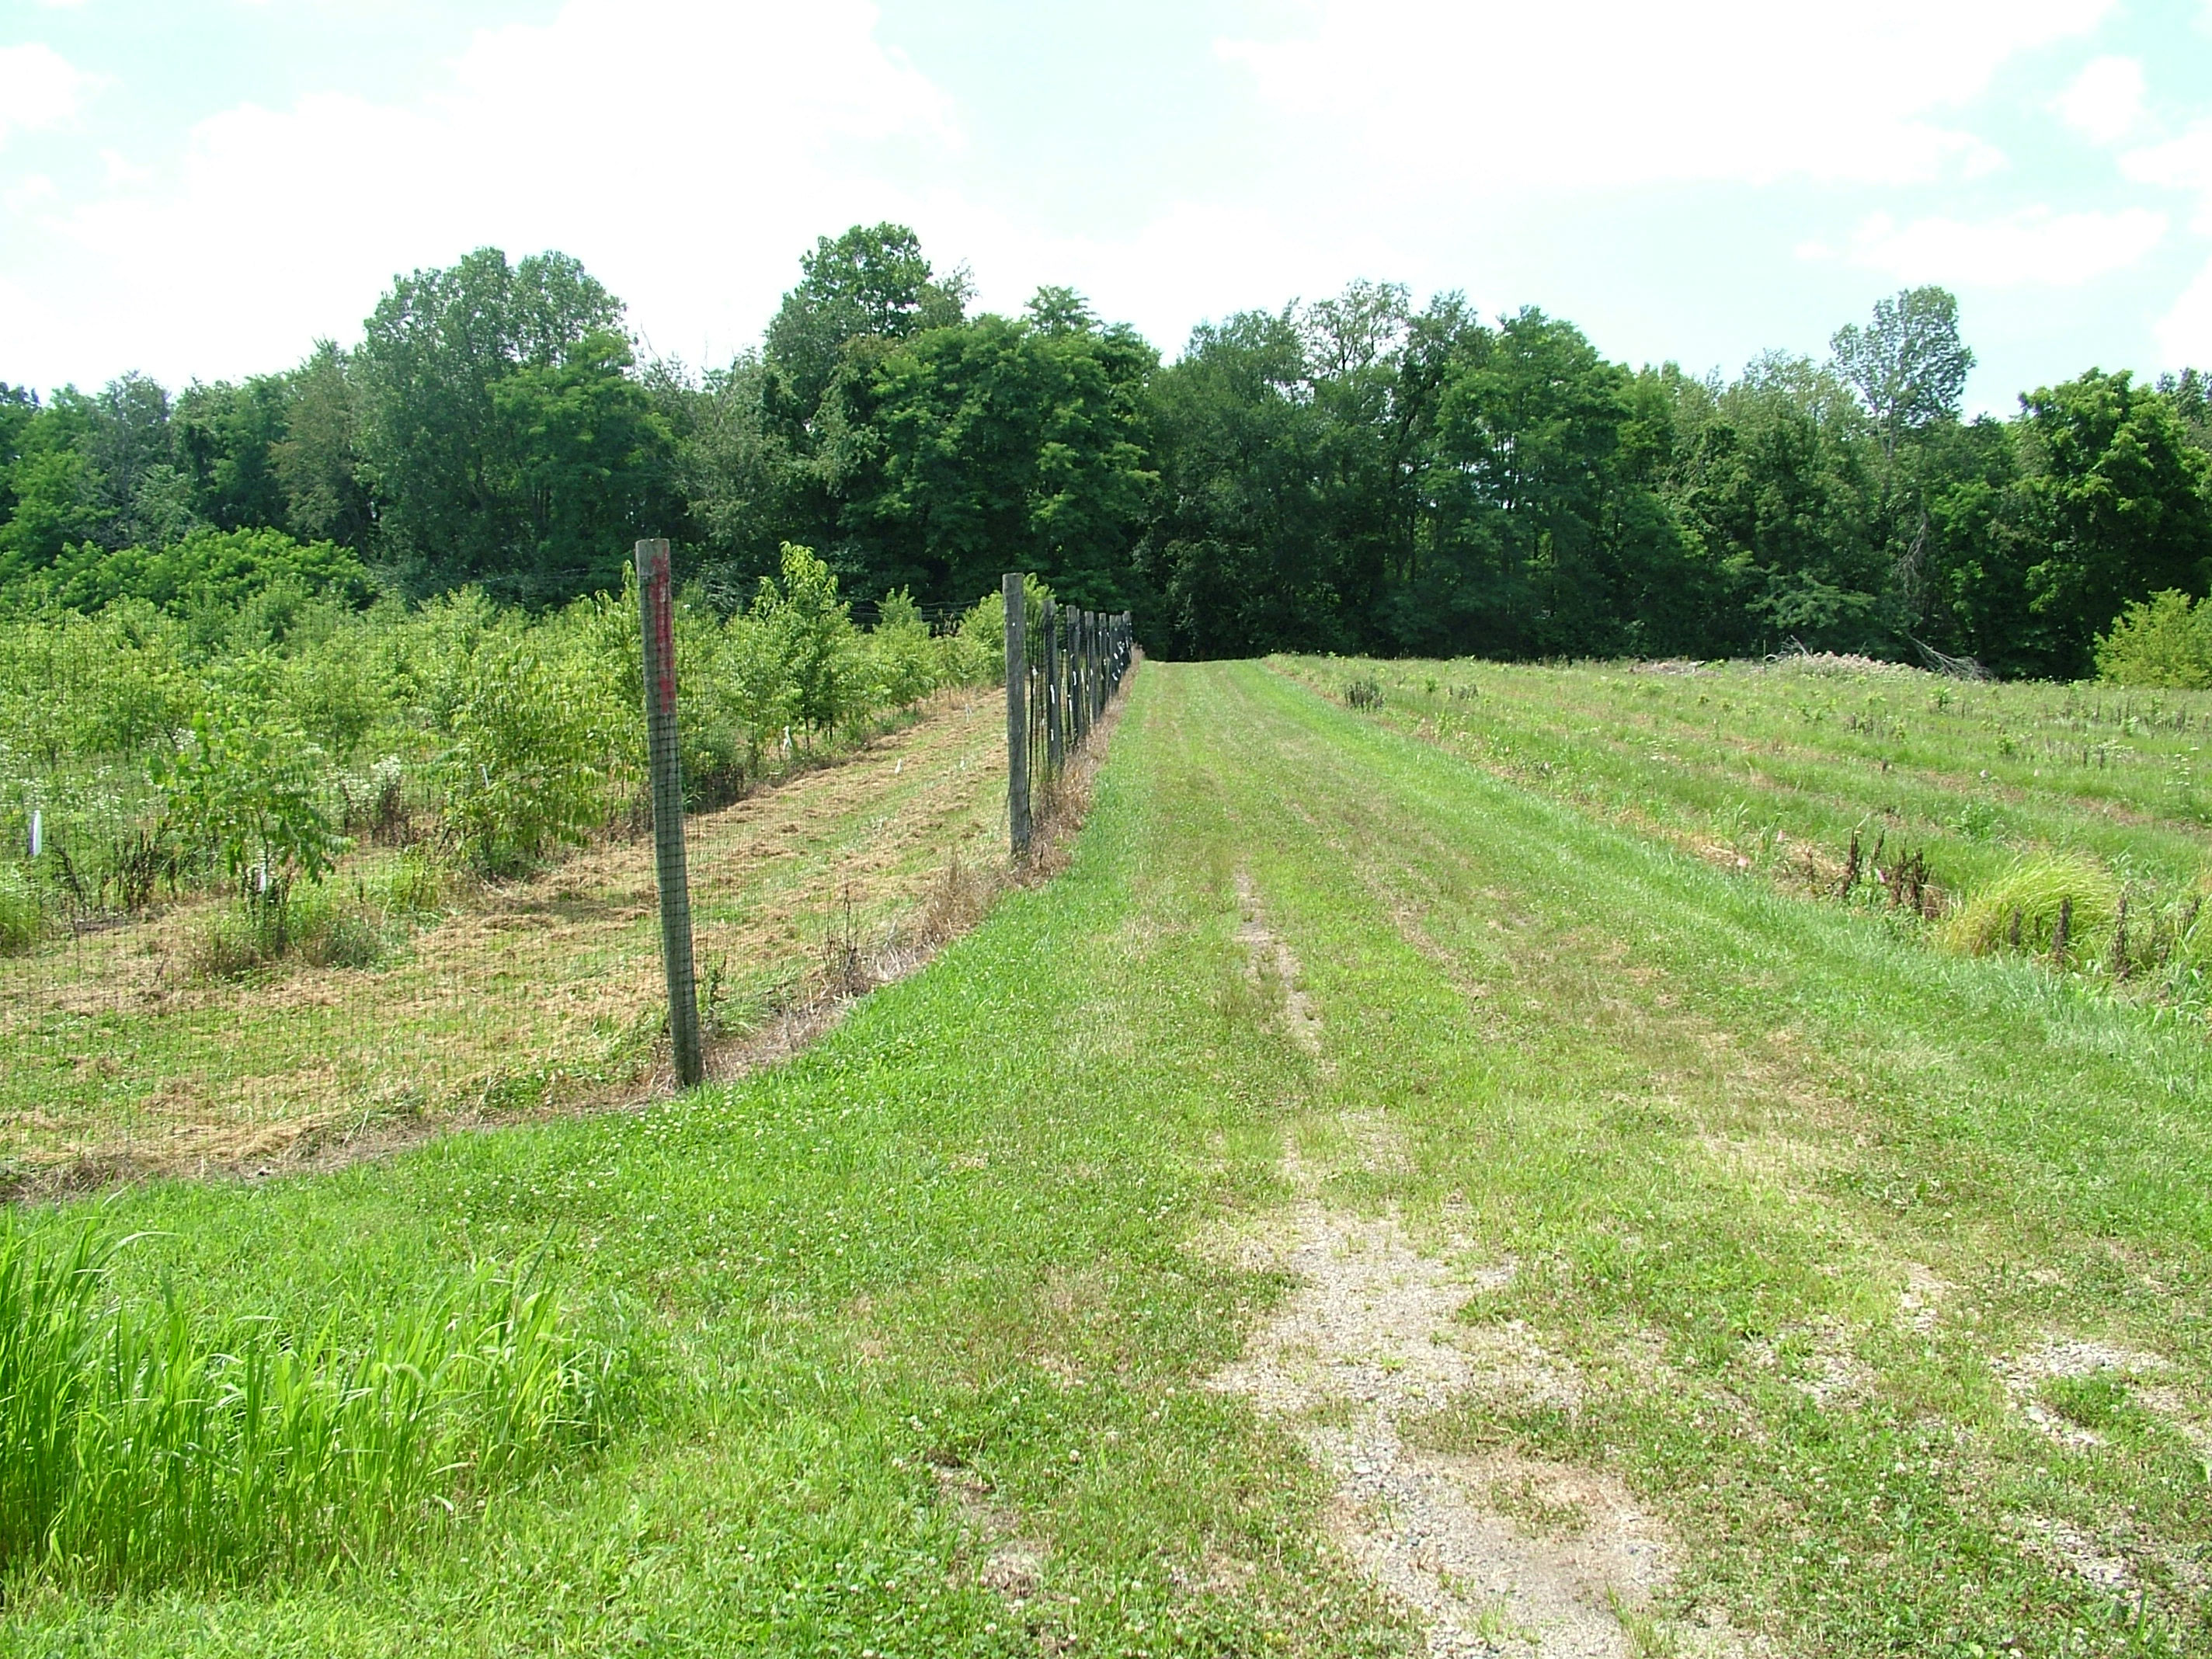 Tree Plantings In Their Third Growing Season Showing Growth Inside Left And Outside Right A Plastic Mesh Deer Exclusion Fence